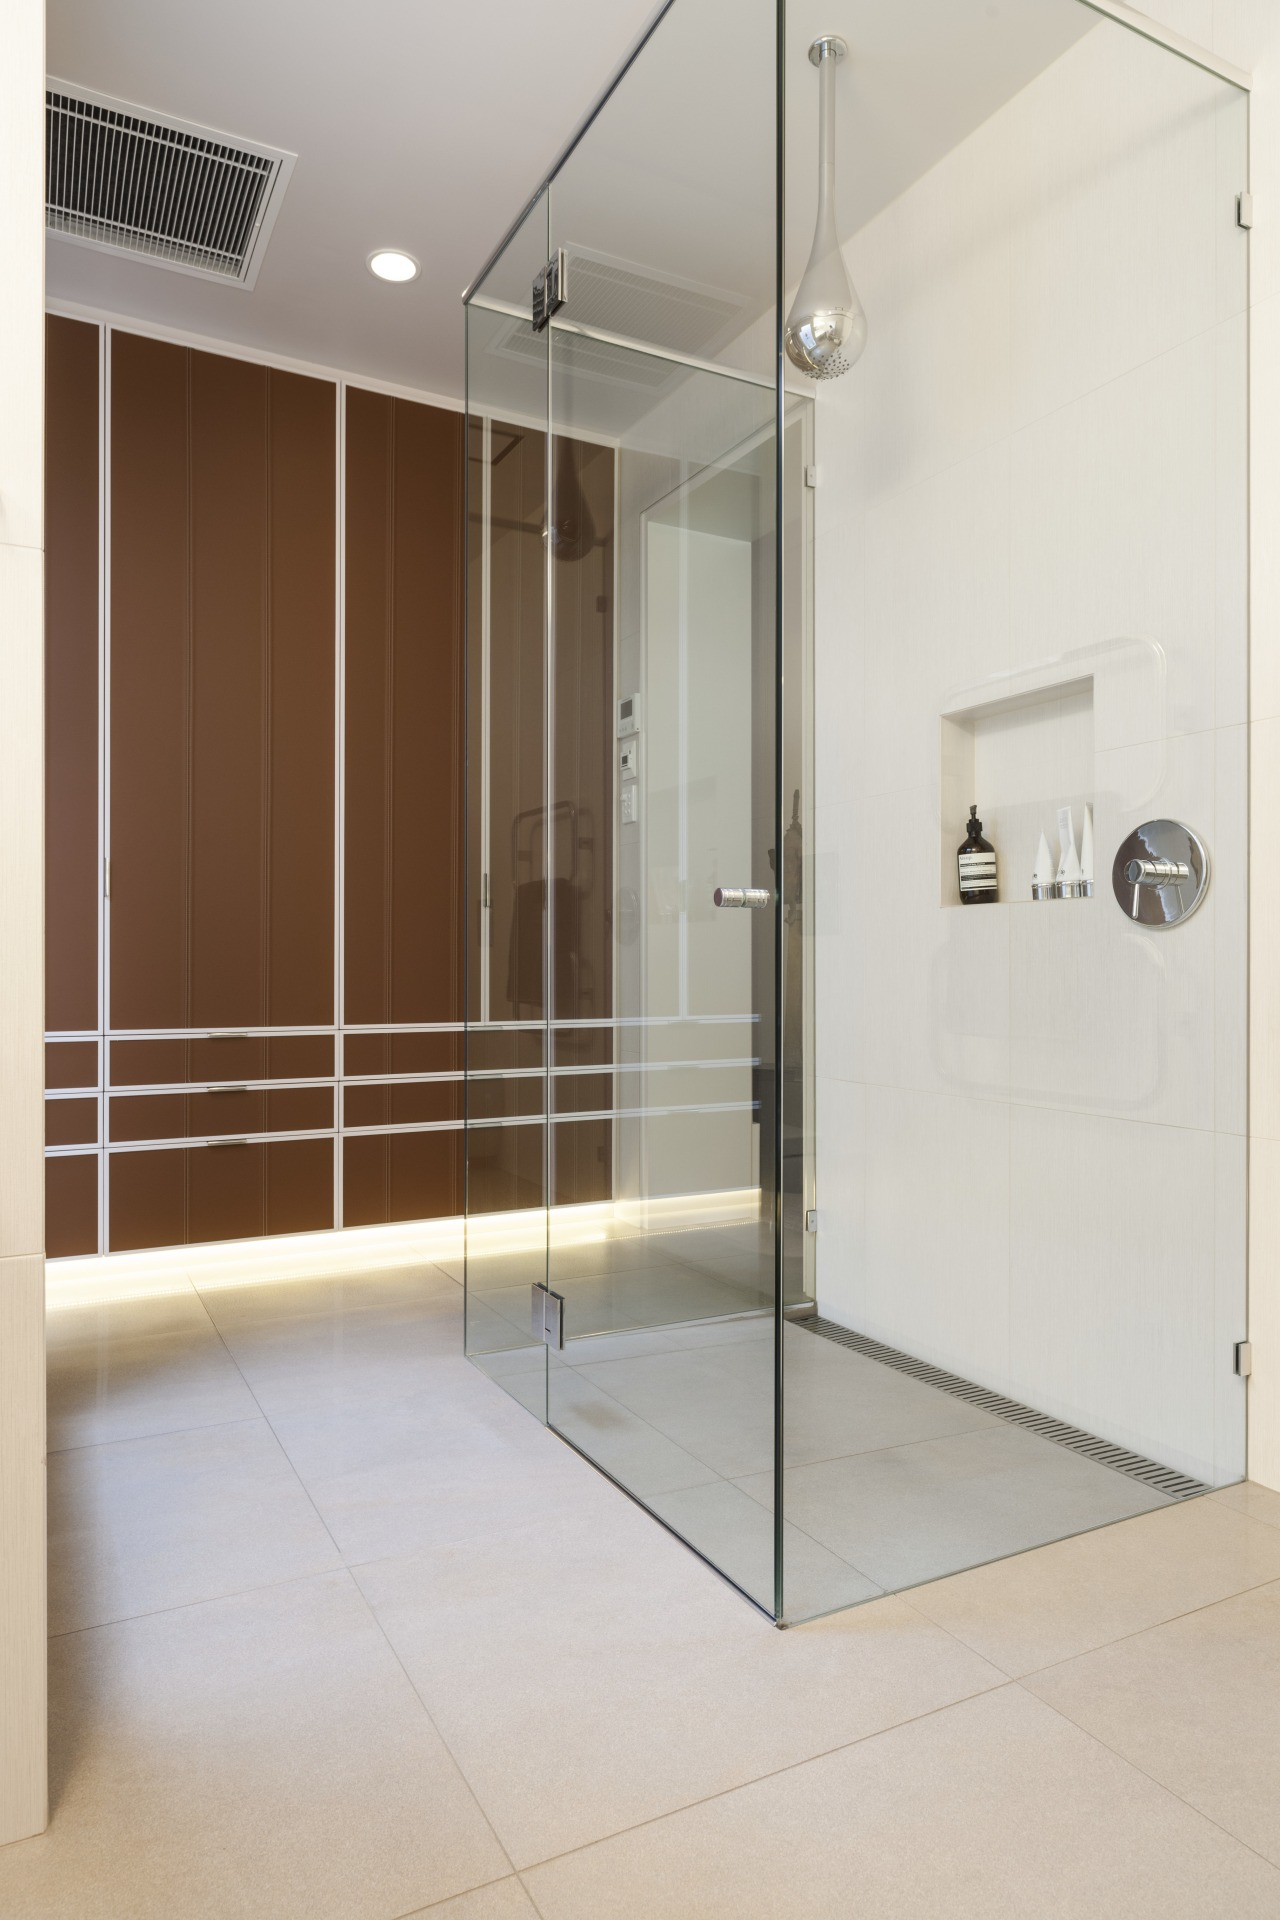 A Goccia showerhead provides variable showering experiences in floor, glass, interior design, plumbing fixture, shower, gray